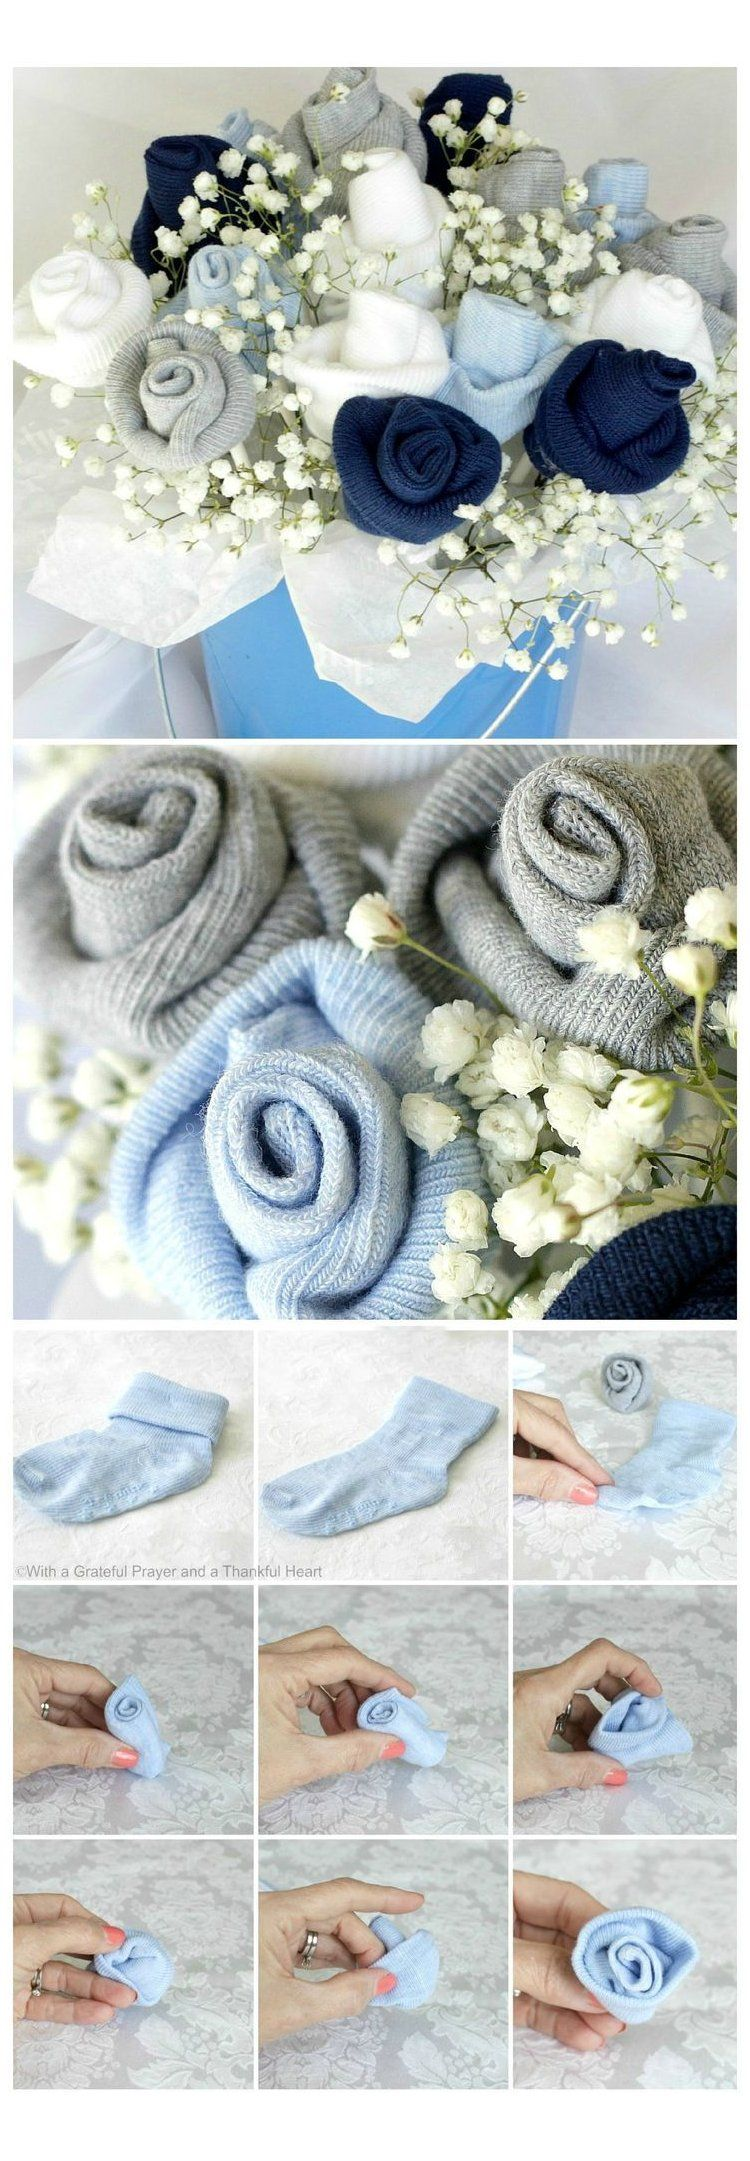 Pin By Nikki Vanblarcom On Crafty Gifts To Give Receive In 2020 Baby Socks Flower Bouquet Baby Socks Flowers Baby Socks